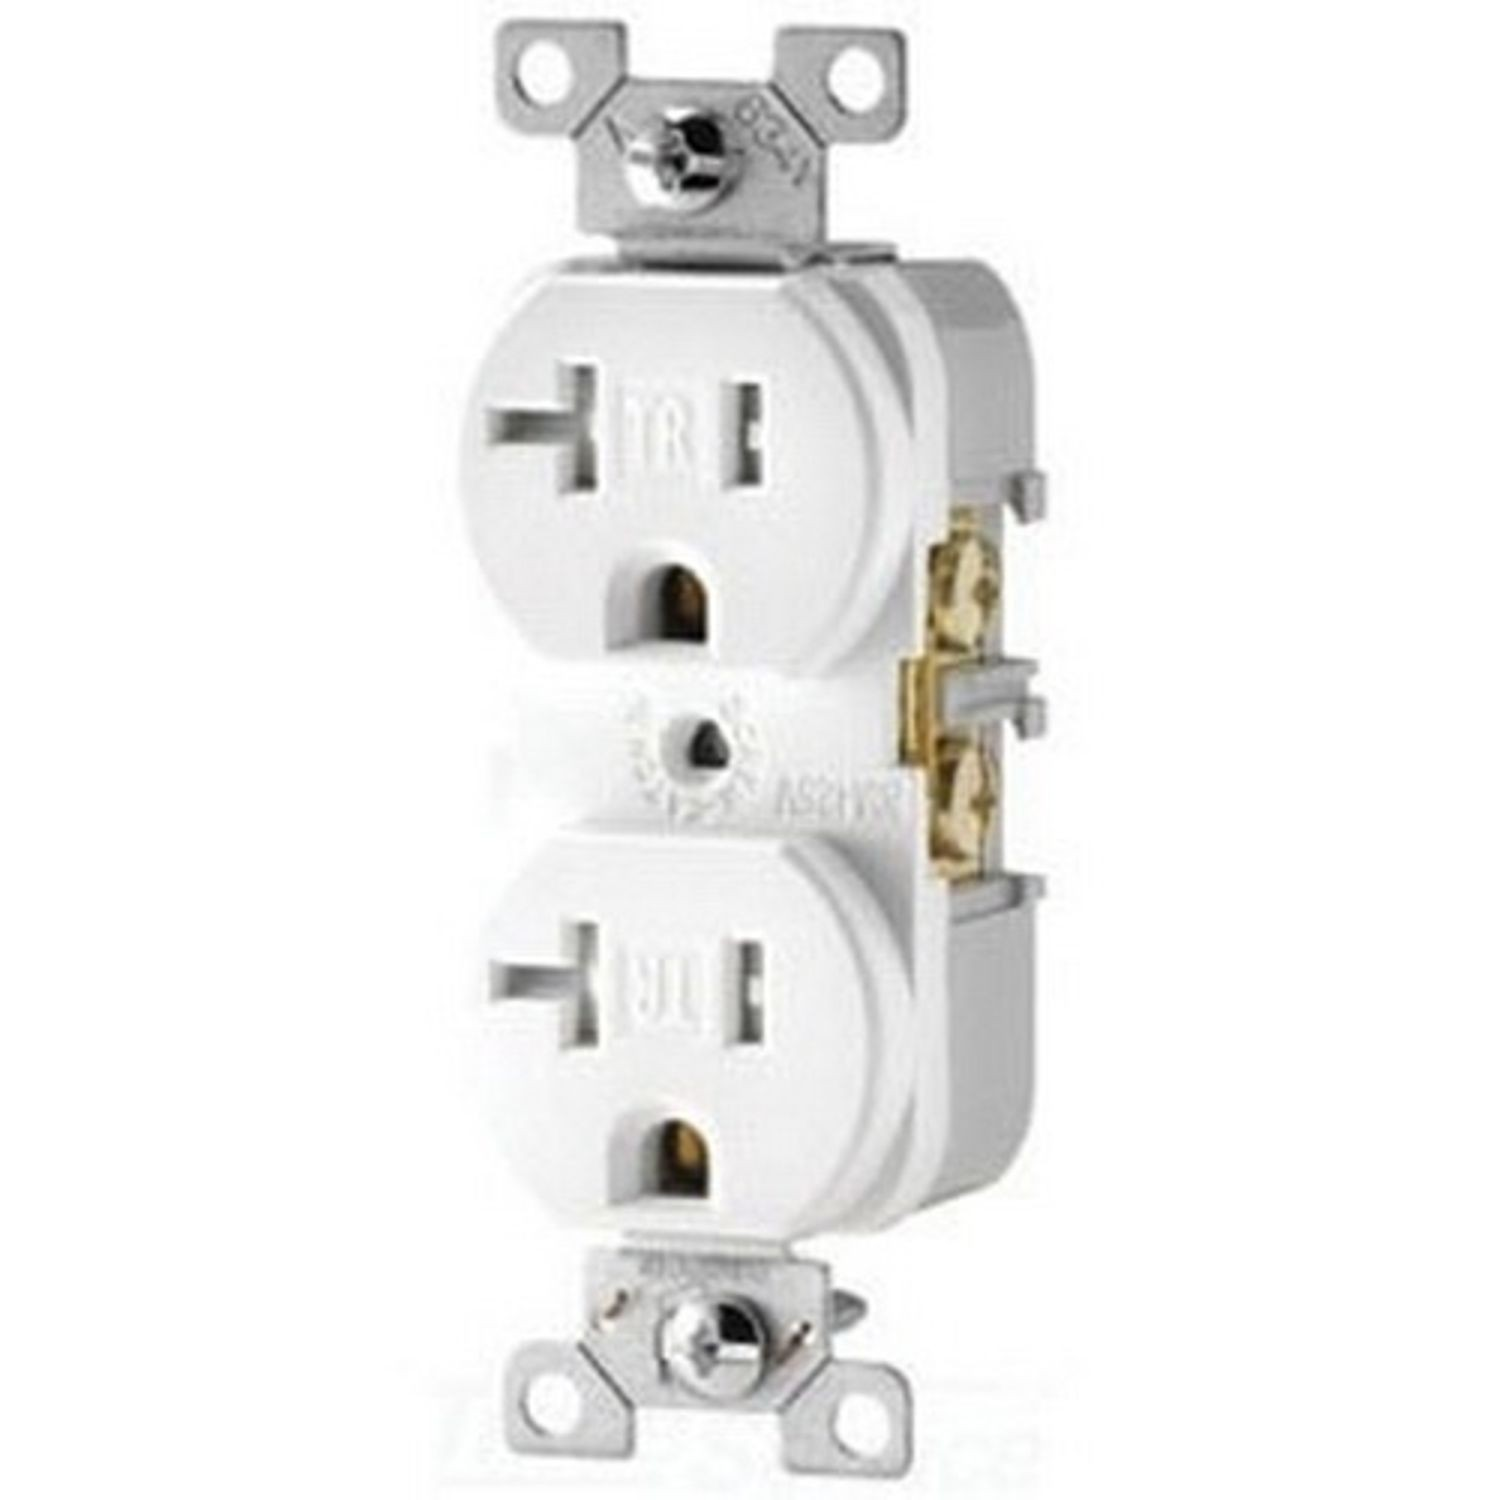 Cooper Wiring Arrow Hart Trcr20w Straight Blade Duplex Receptacle 125 Vac 20 A 2 Poles 3 Wires White